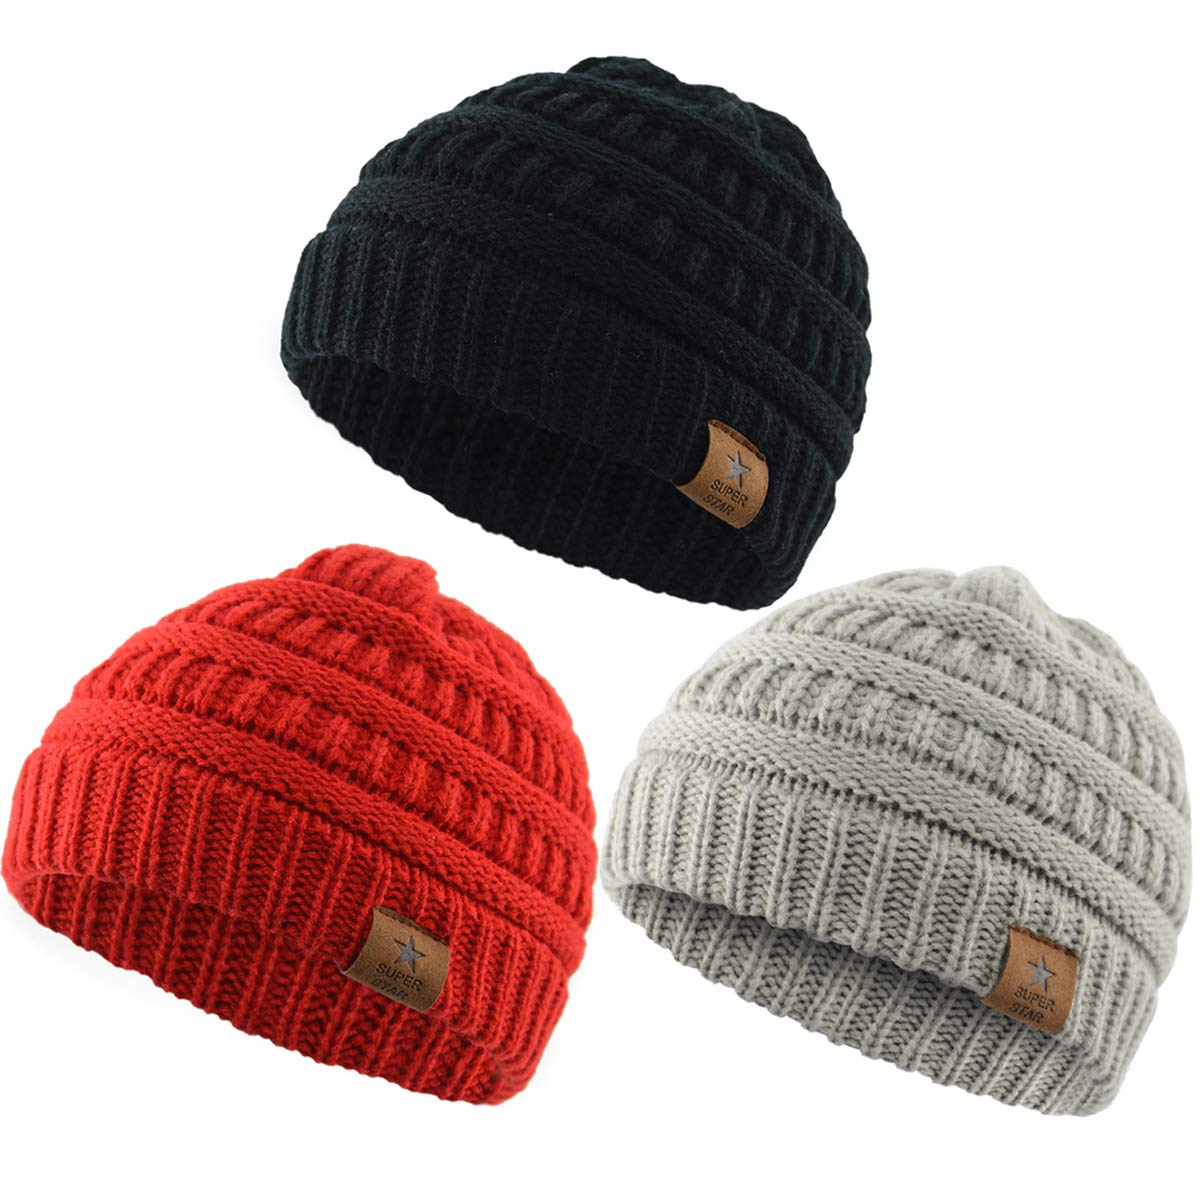 American Trends Kids Baby Boy Girl Winter Knit Warm Hats Infant Toddler Beanie Caps Black